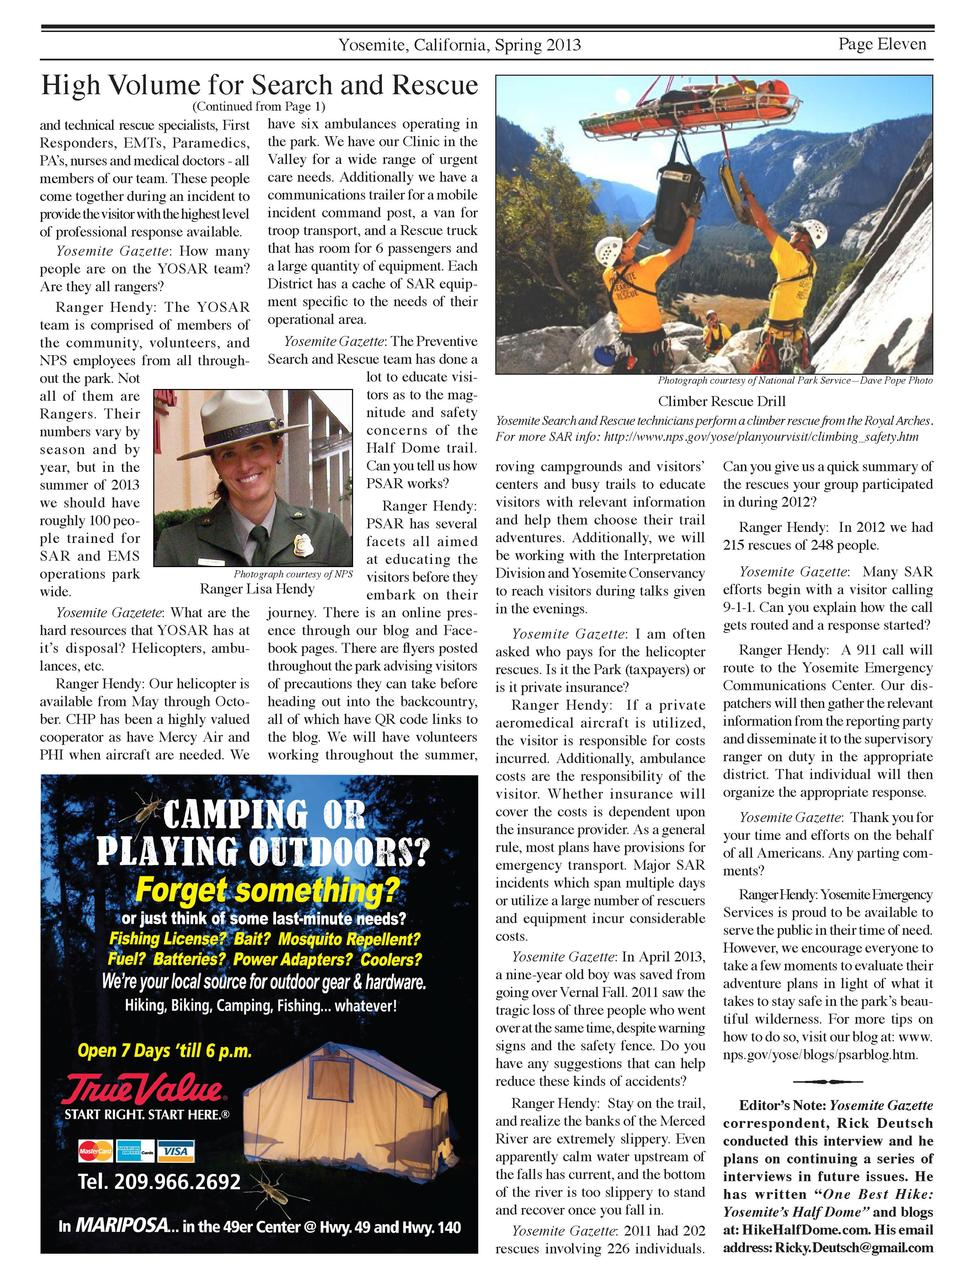 Page Eleven  Yosemite, California, Spring 2013  High Volume for Search and Rescue  Continued from Page 1   and technical r...